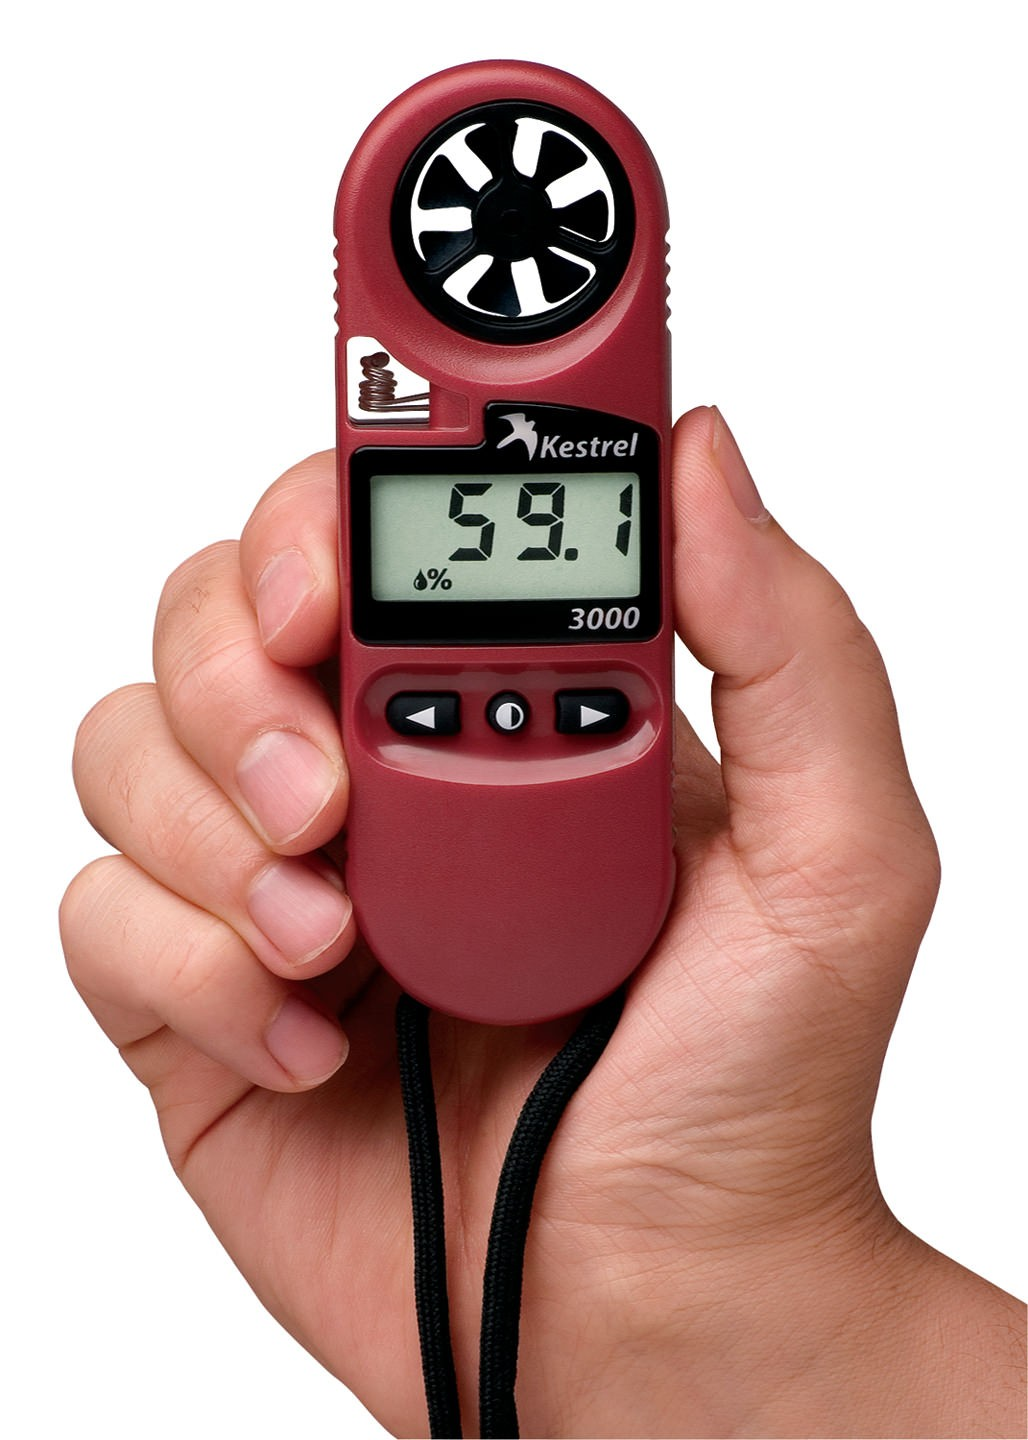 Kestrel 3000 Pocket Wind Meter Red NEK-0830